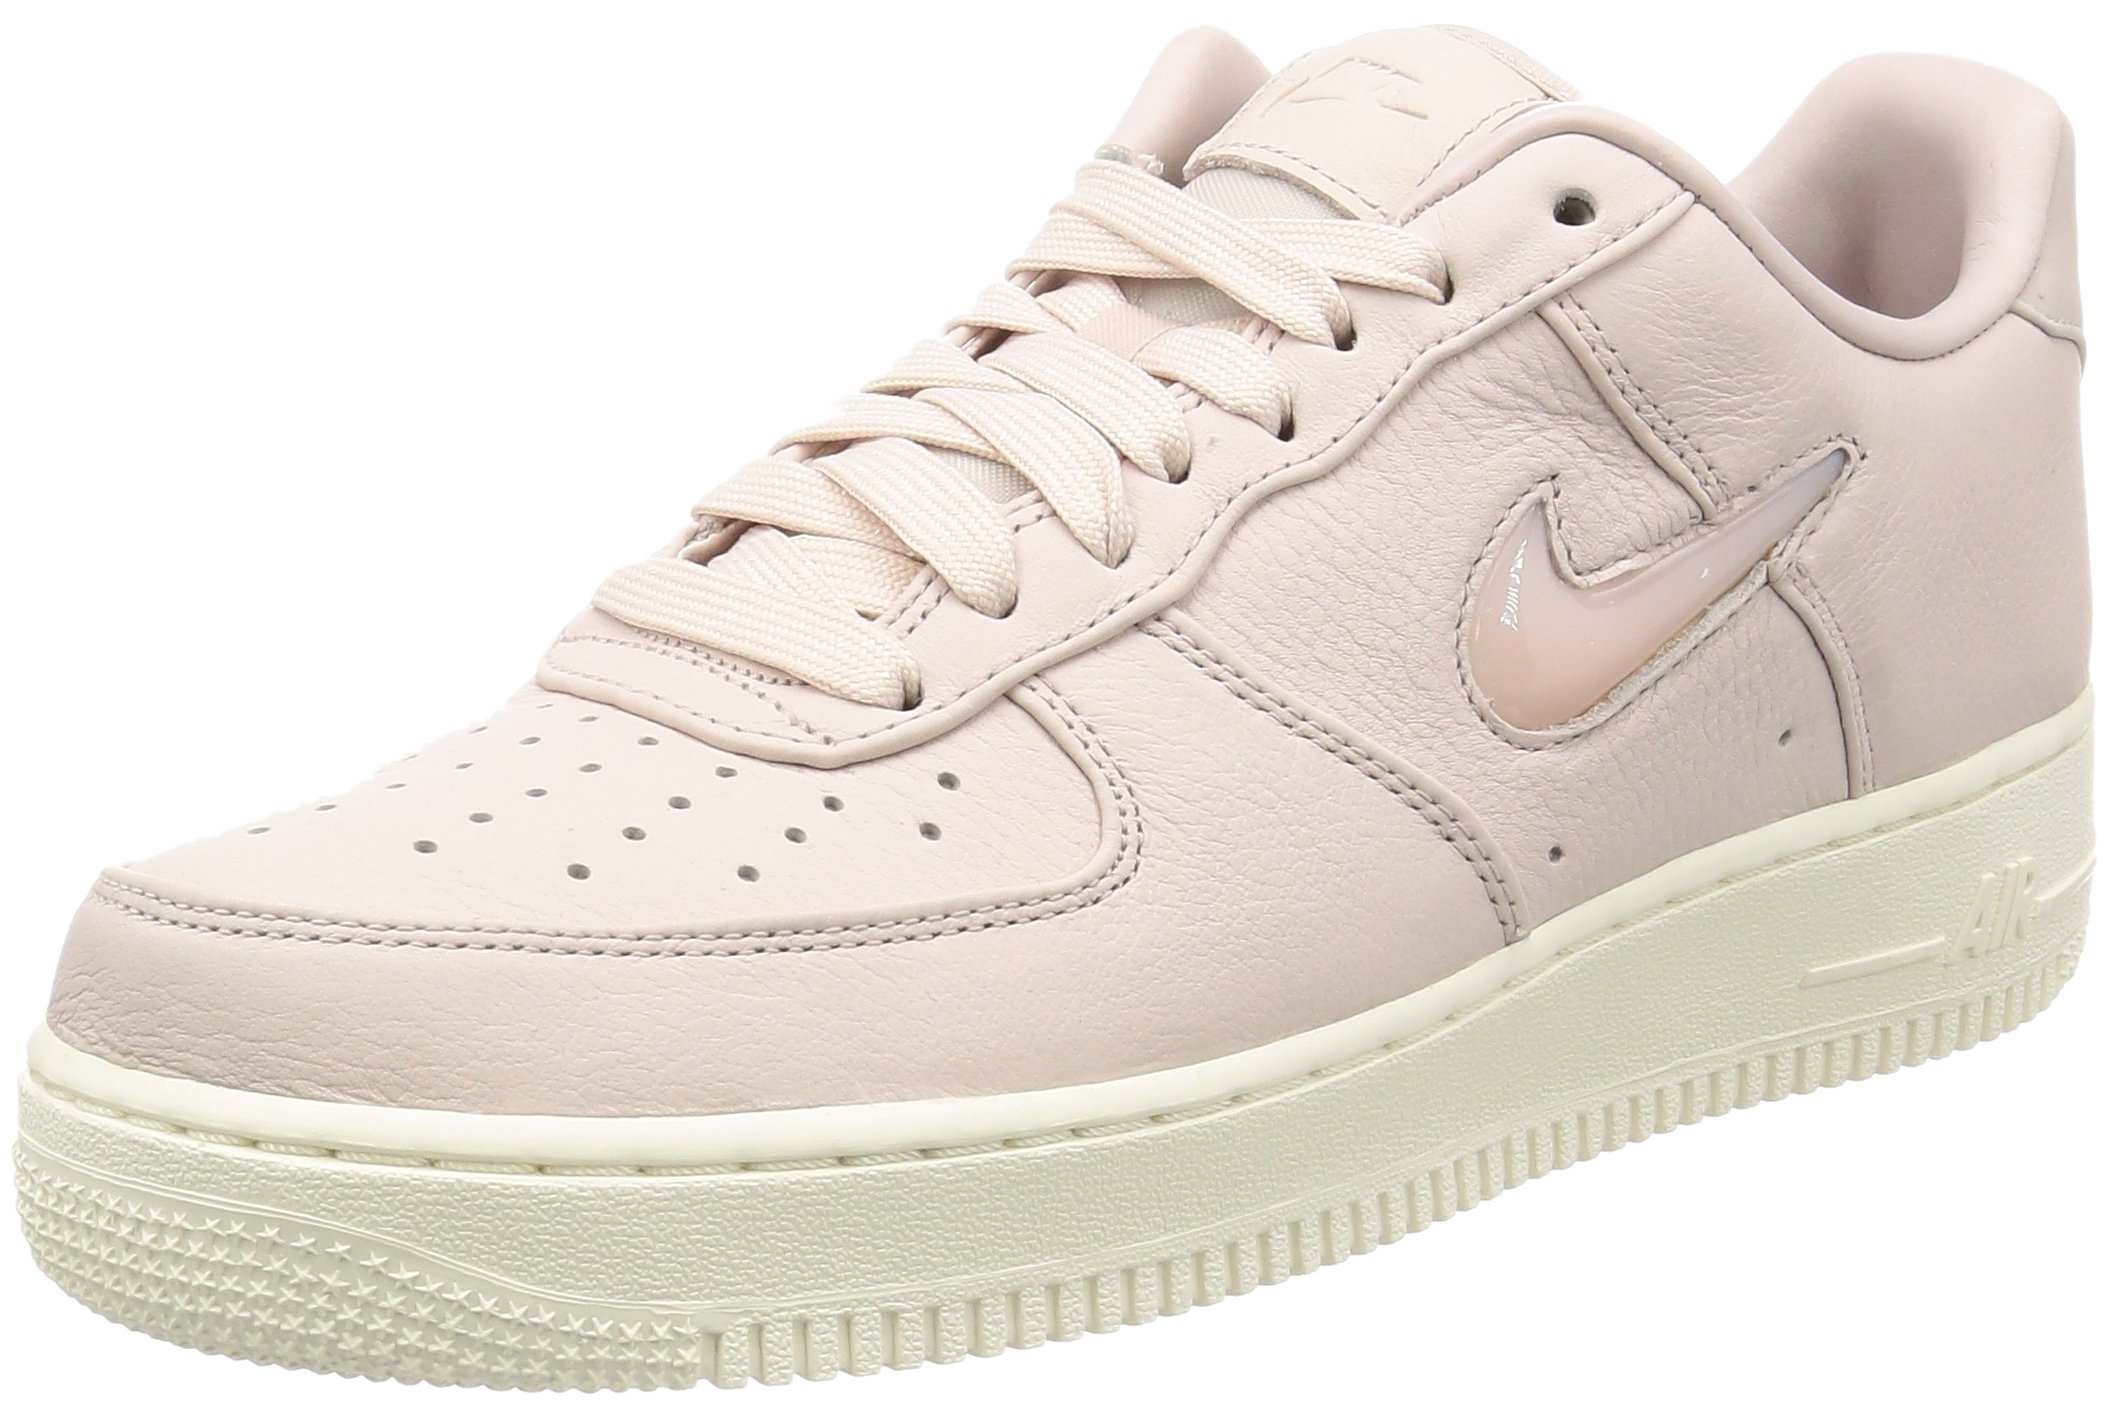 Nike Mens Air Force 1 Retro PRM Jewel Pack Silt Red/Sail Leather Size 12